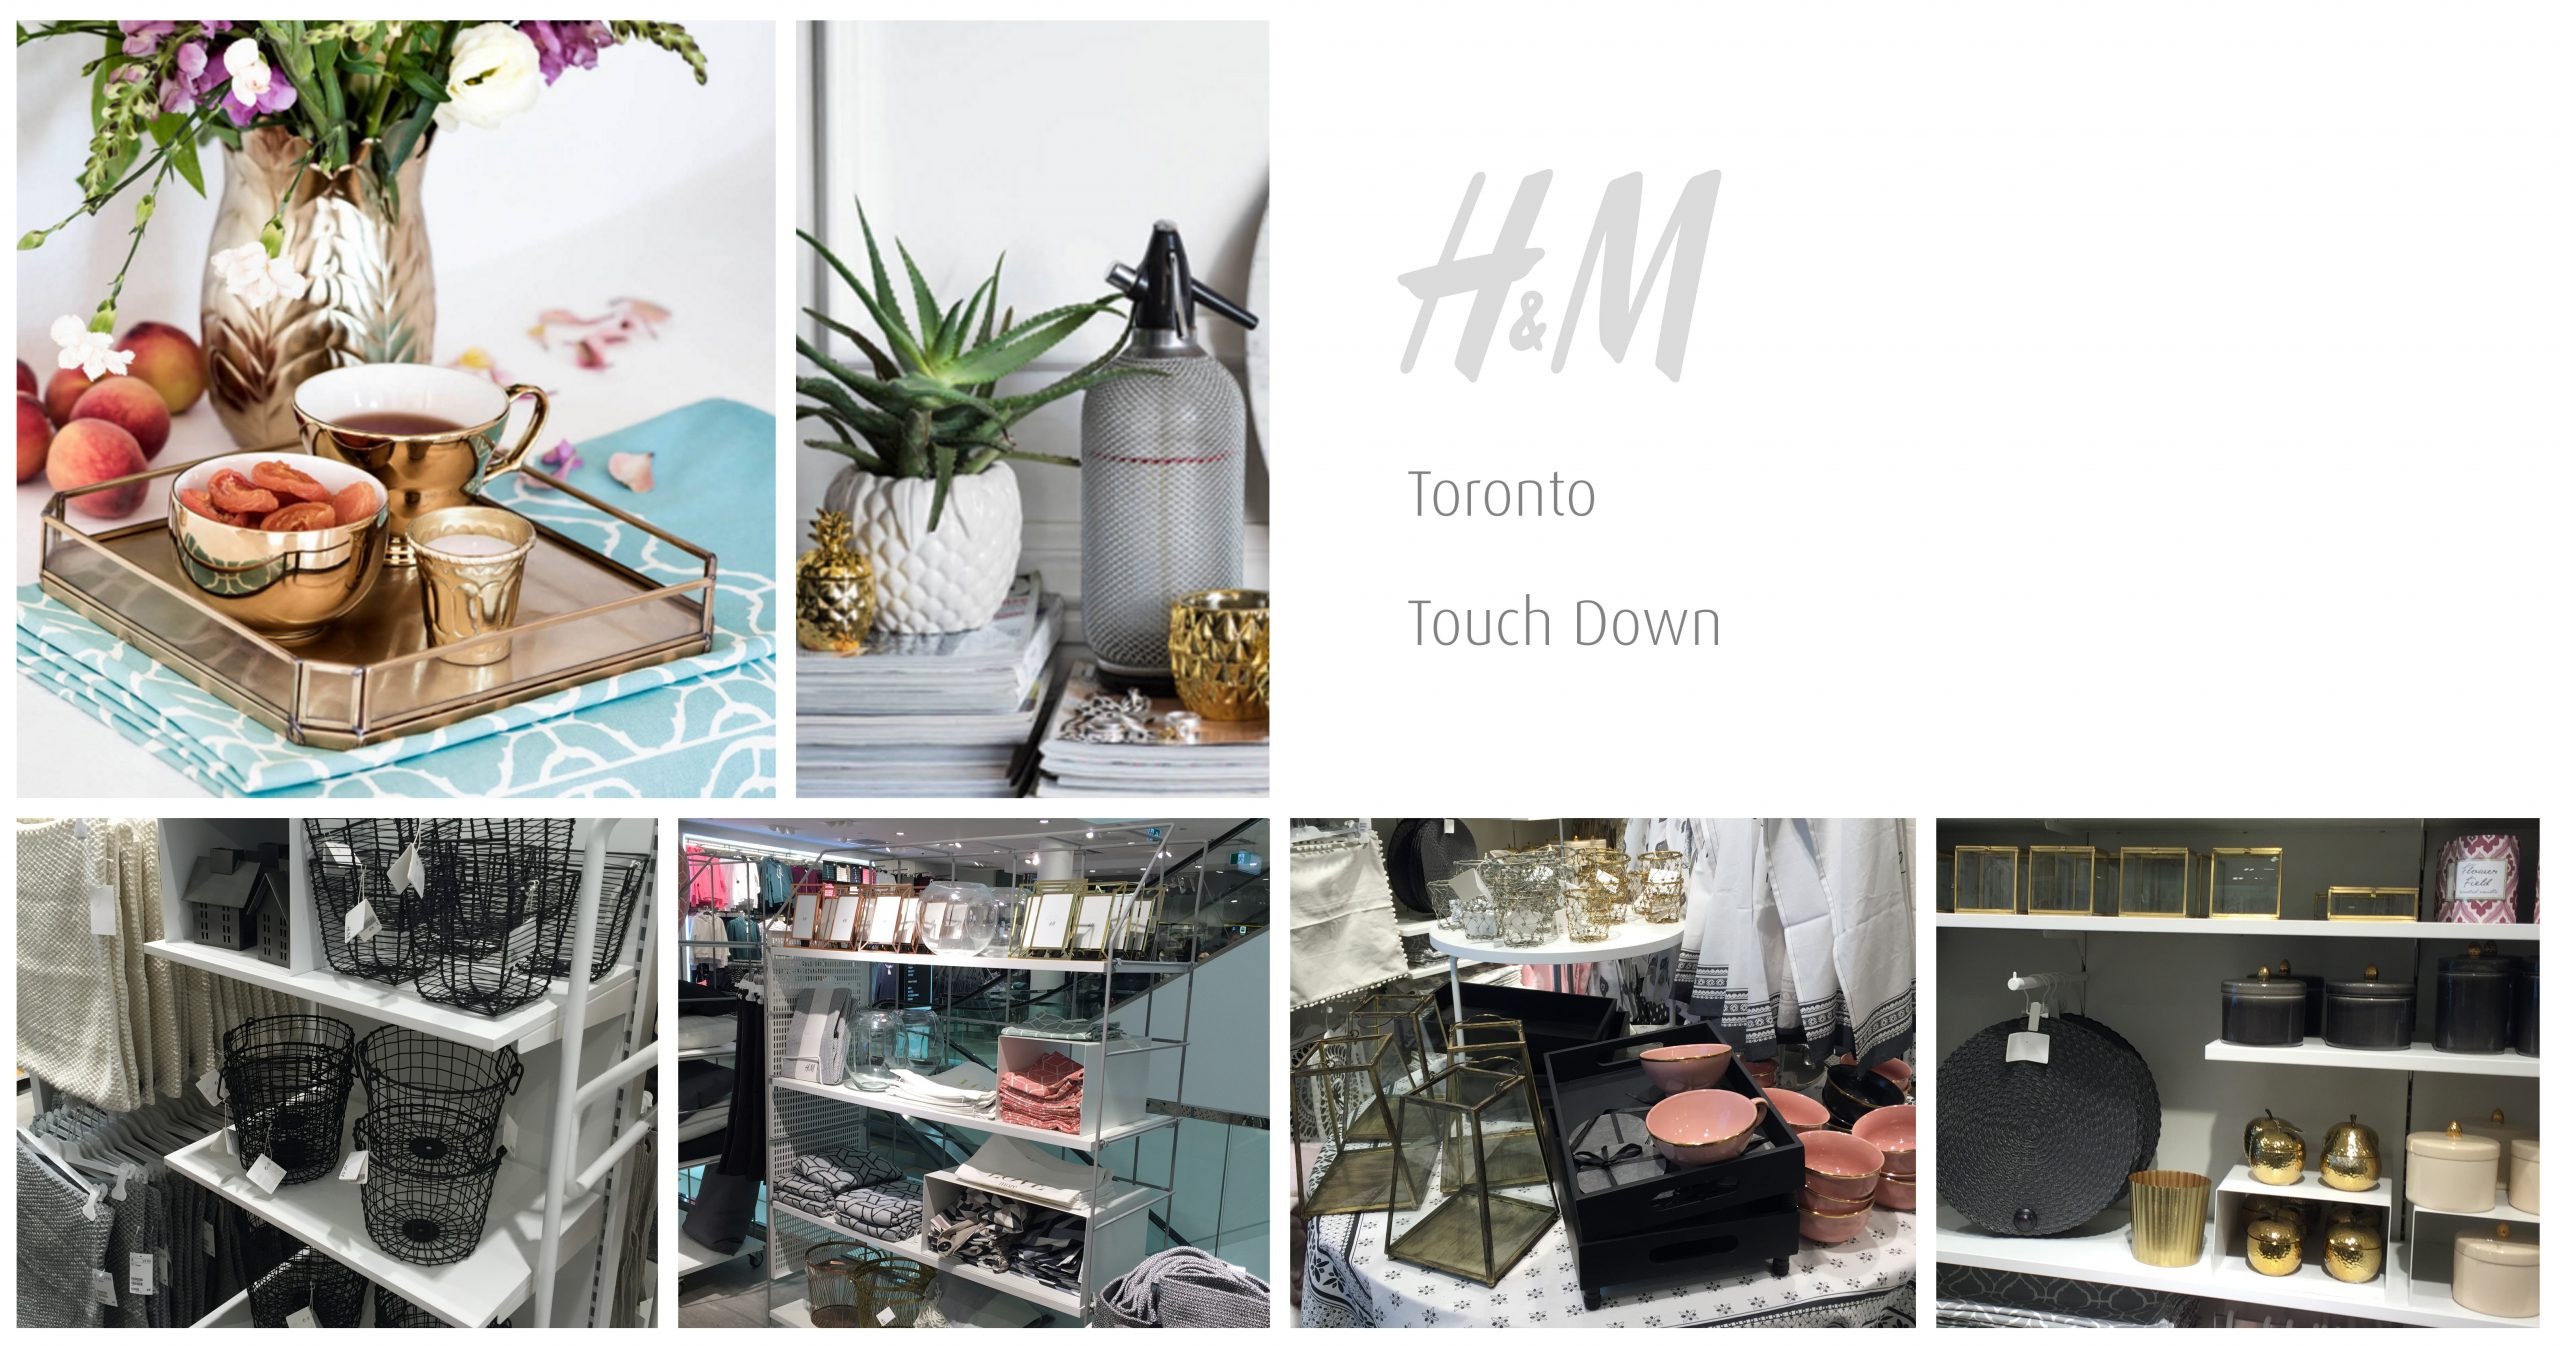 HM Home Toronto Touch Down